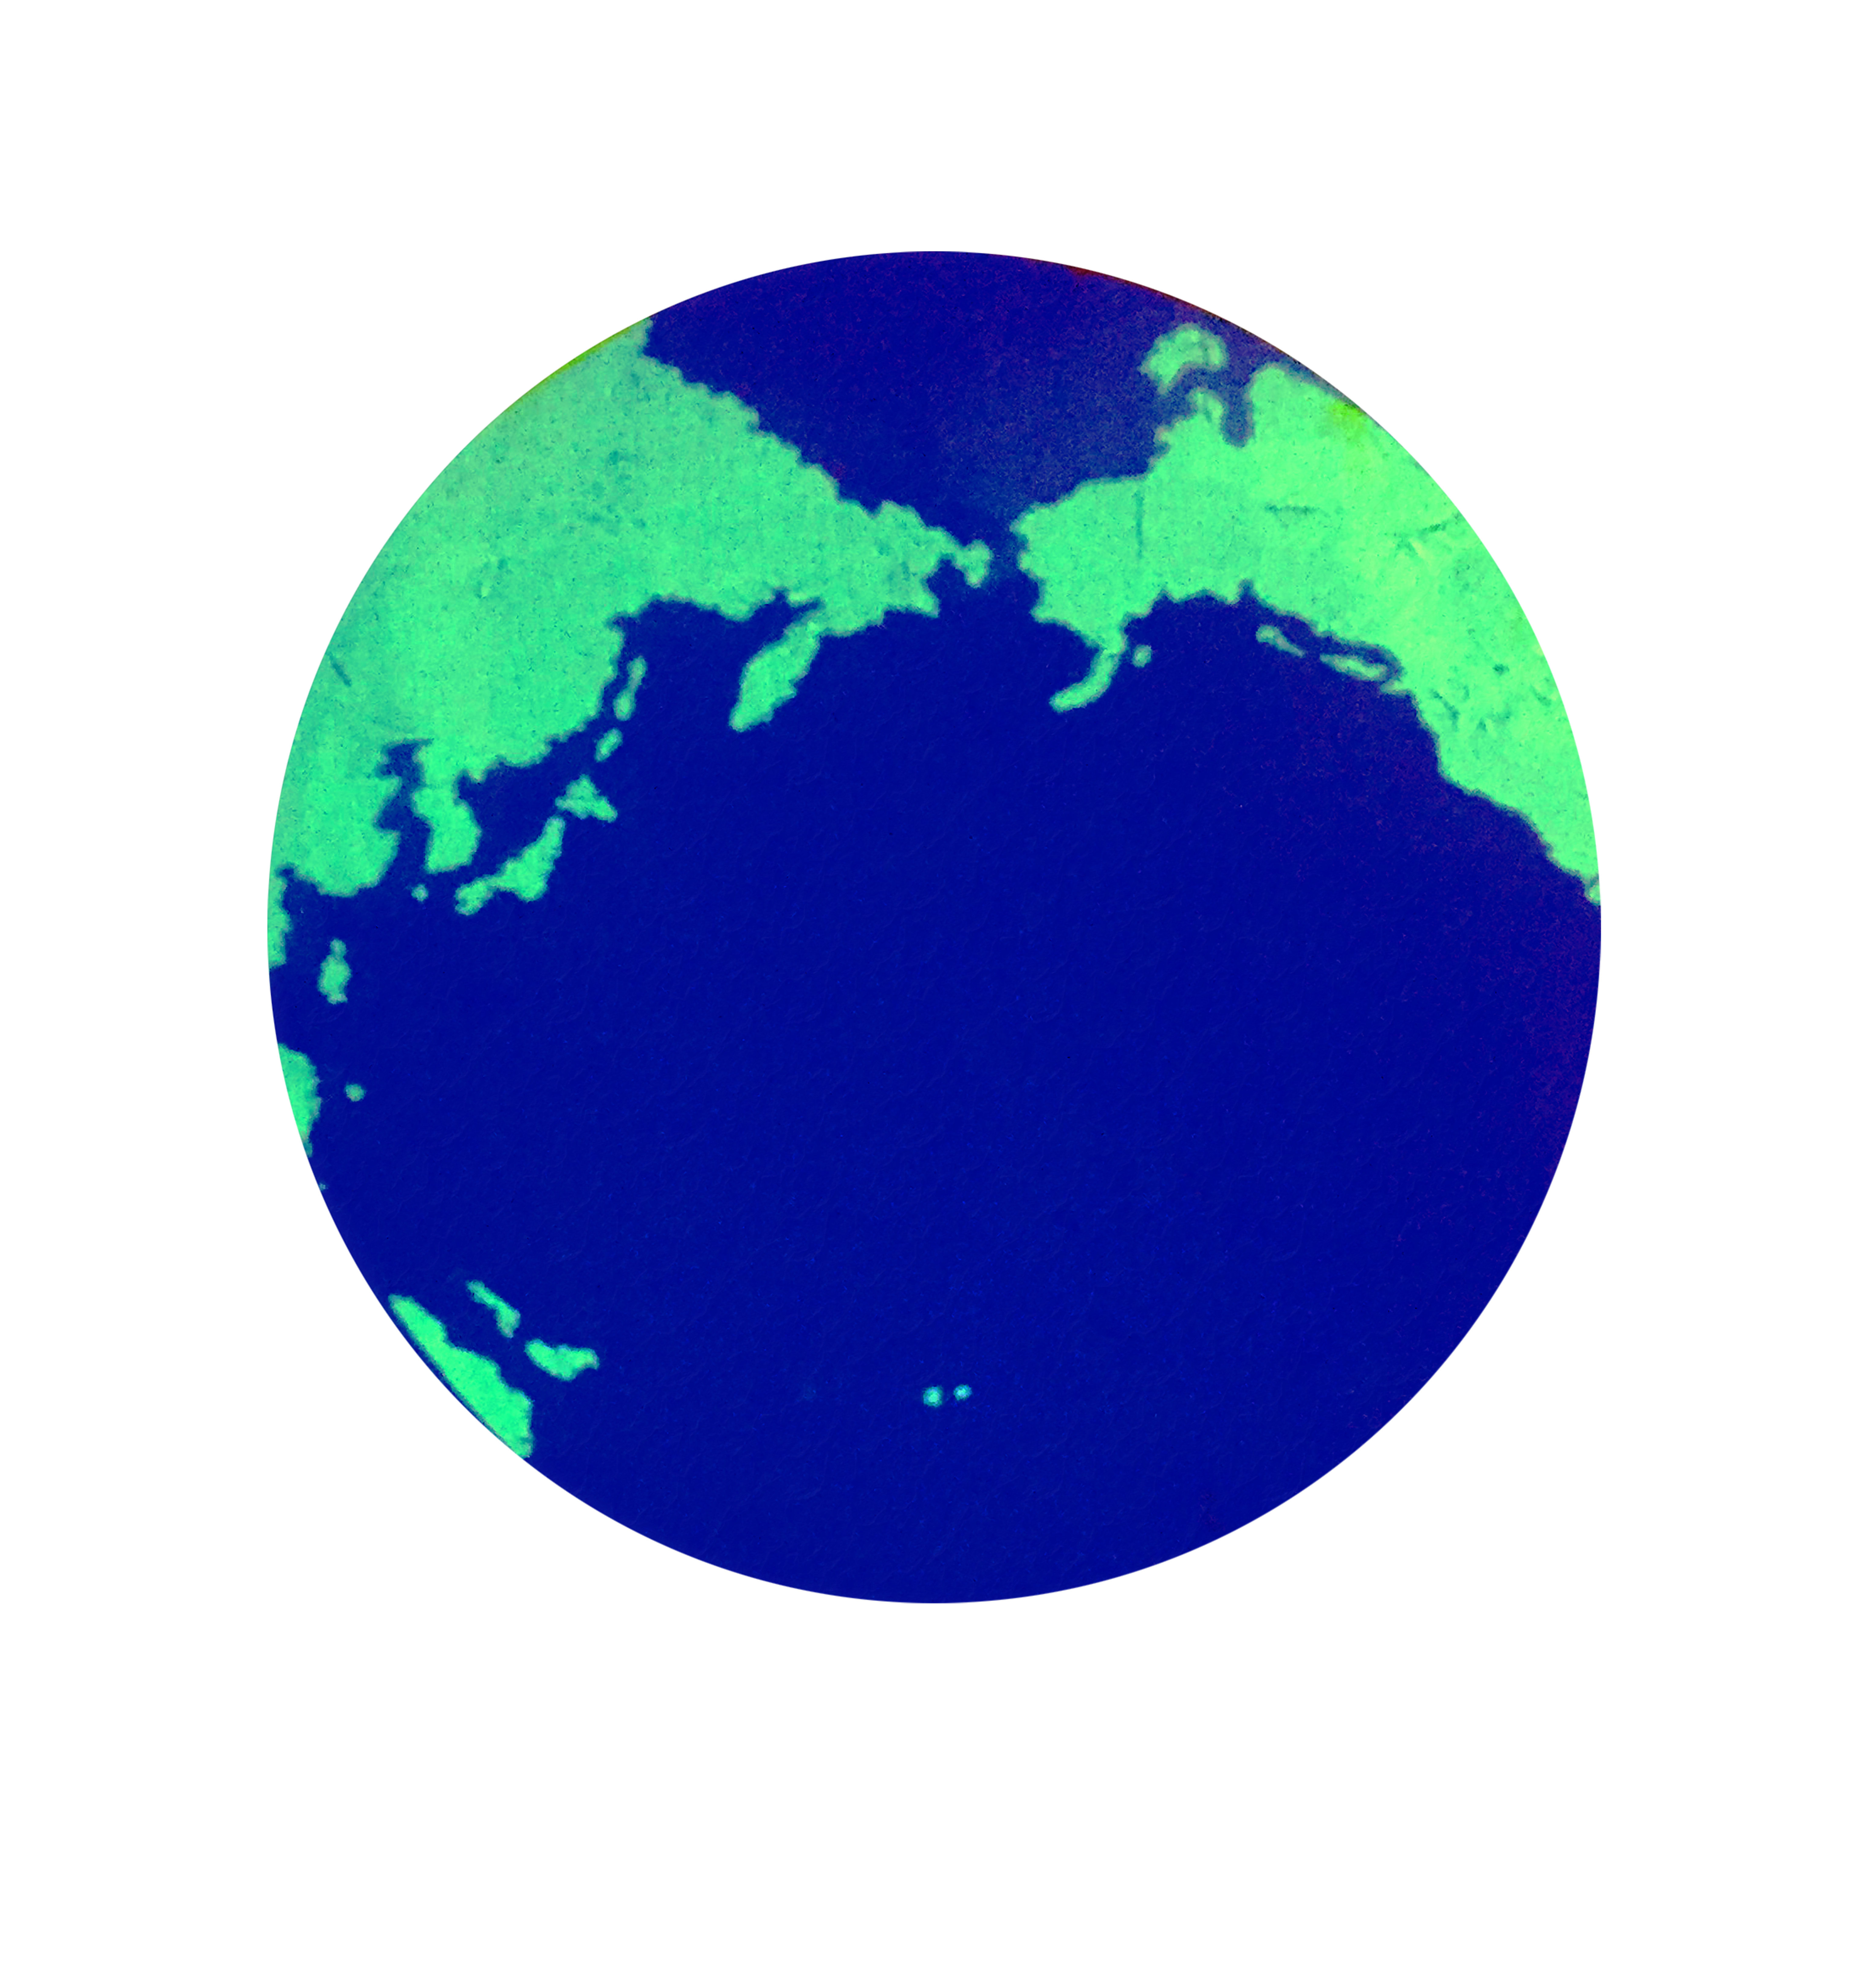 Earth image composed of blue ocean and green continents